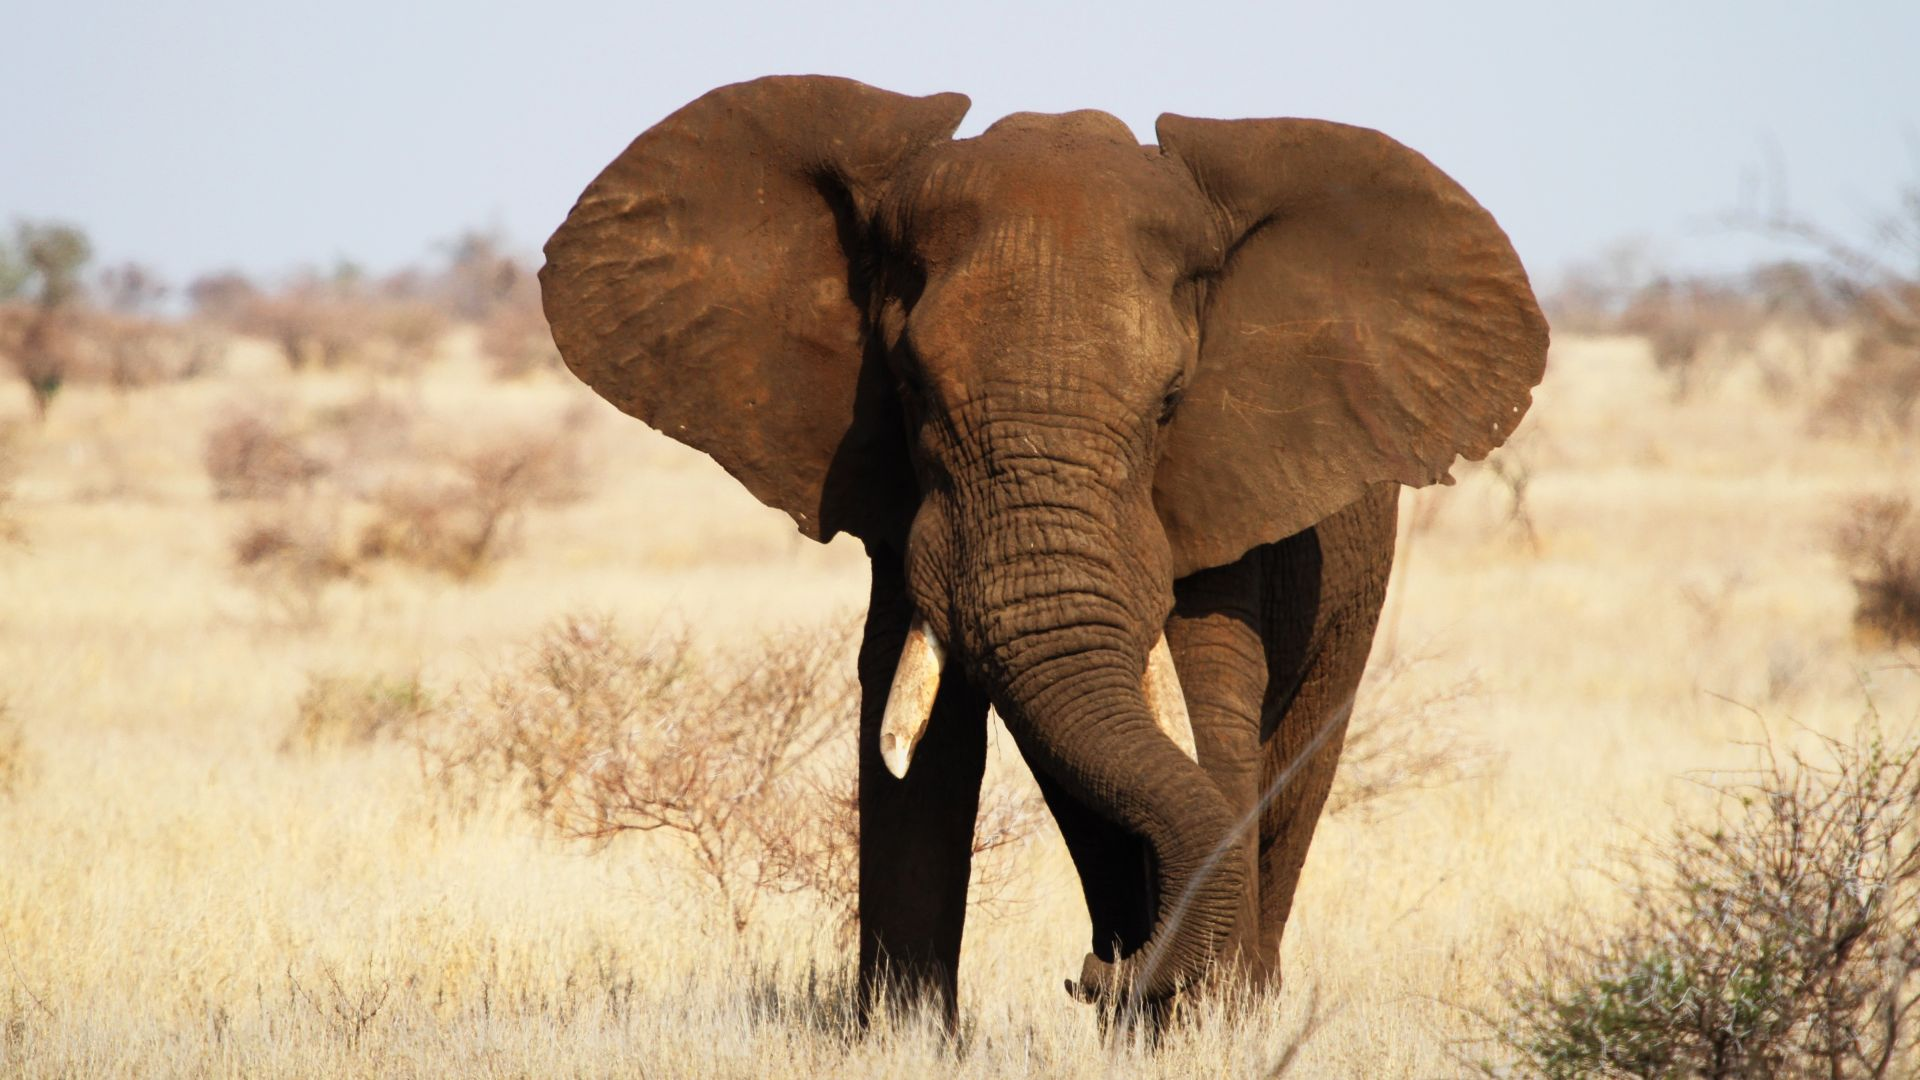 Elephant, Kruger National Park, Africa, wildlife (horizontal)